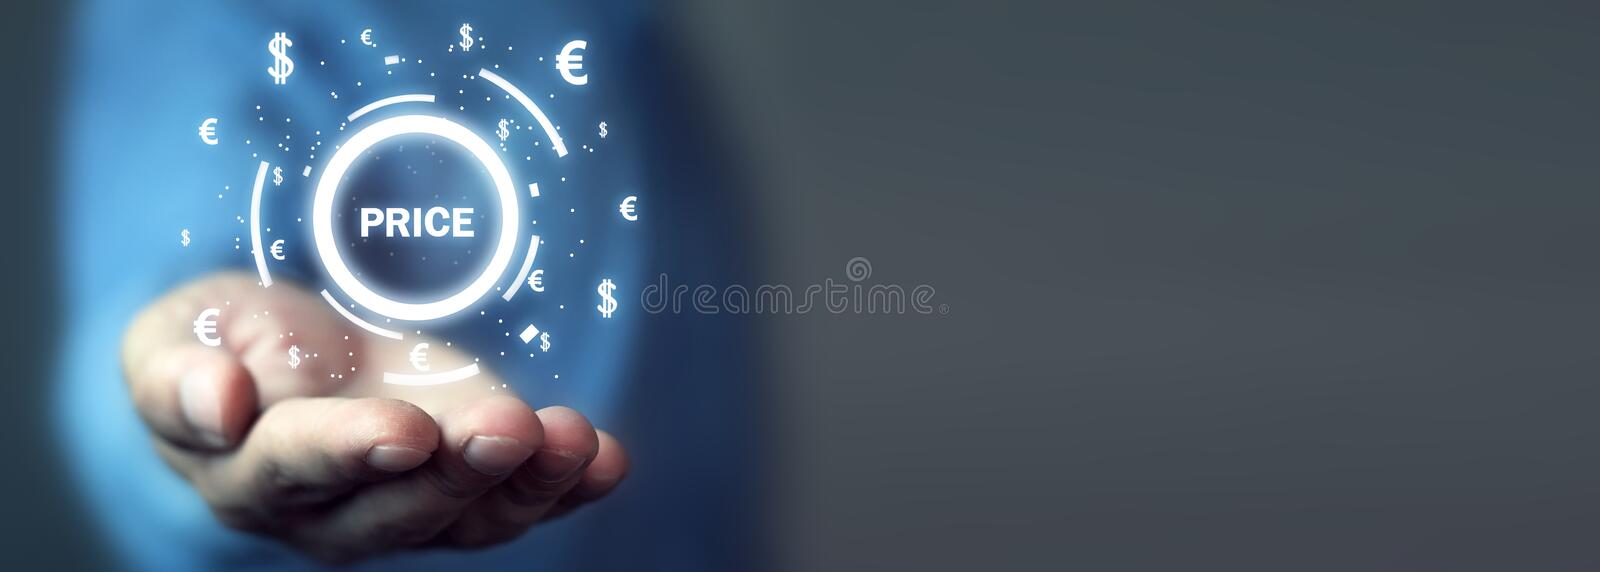 Word Price with currency symbols. Business concept royalty free stock photo